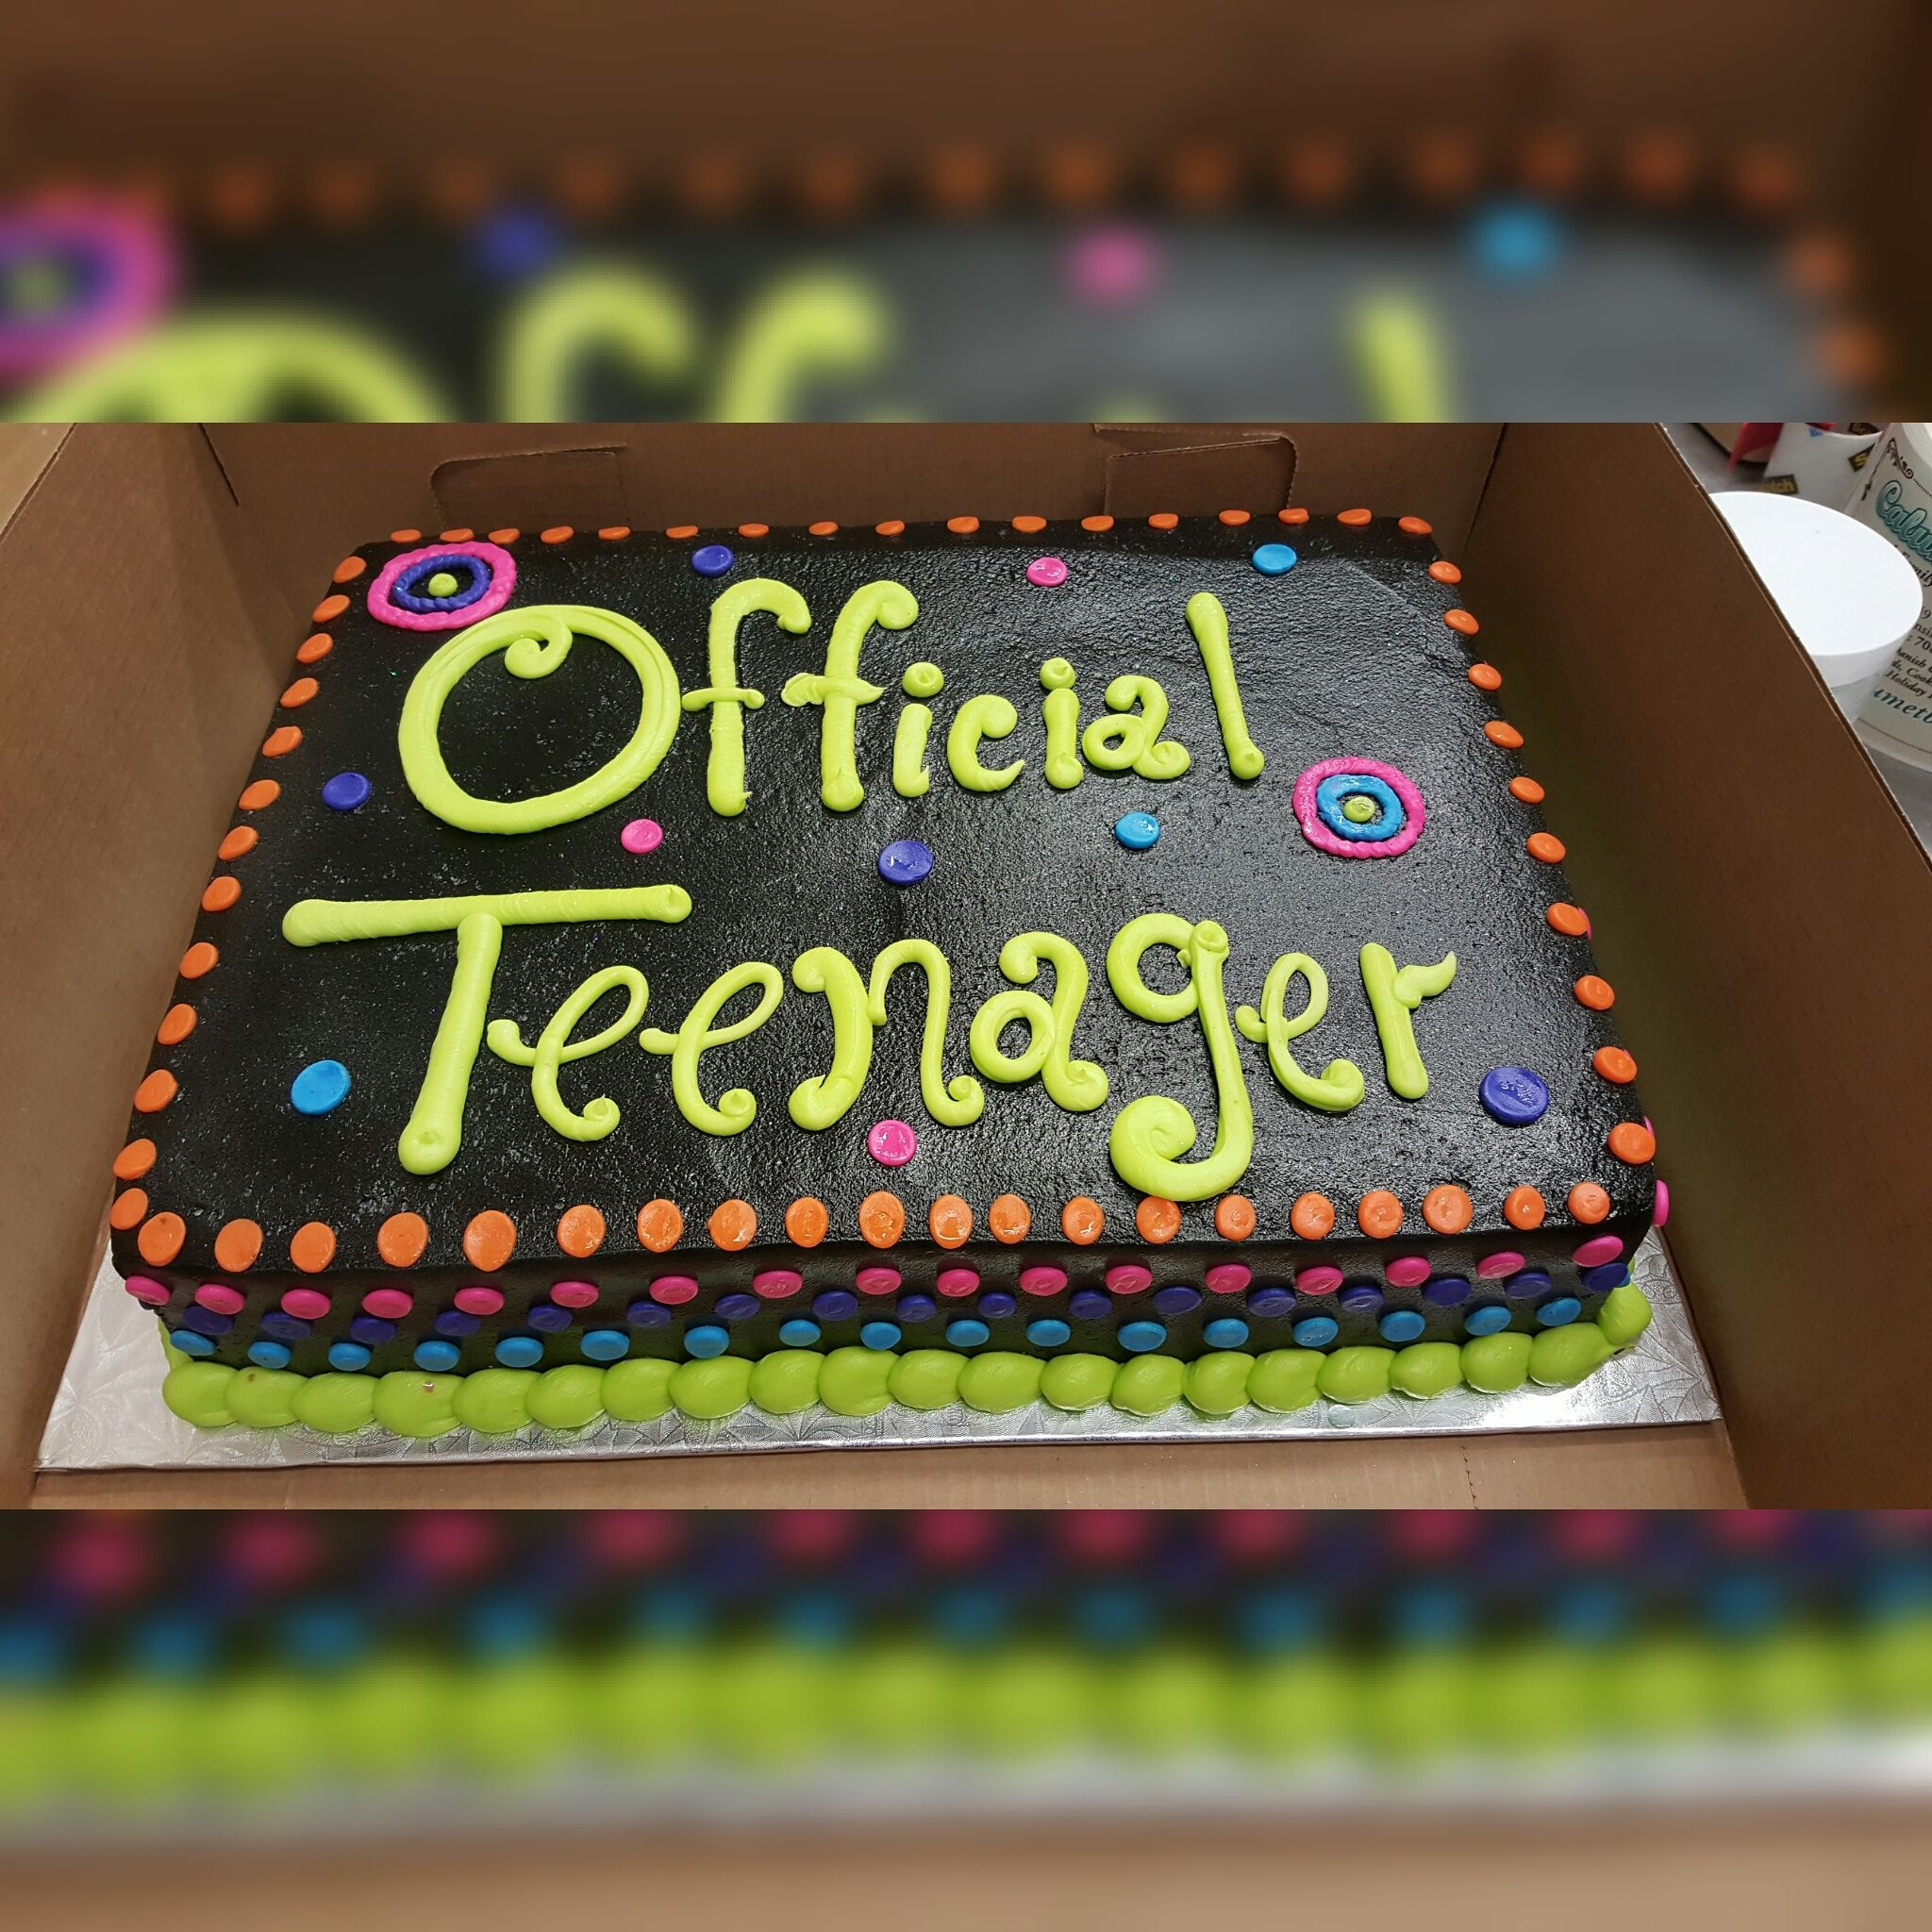 Calumet Bakery Official Teenager Cake 13 Birthday Cake Birthday